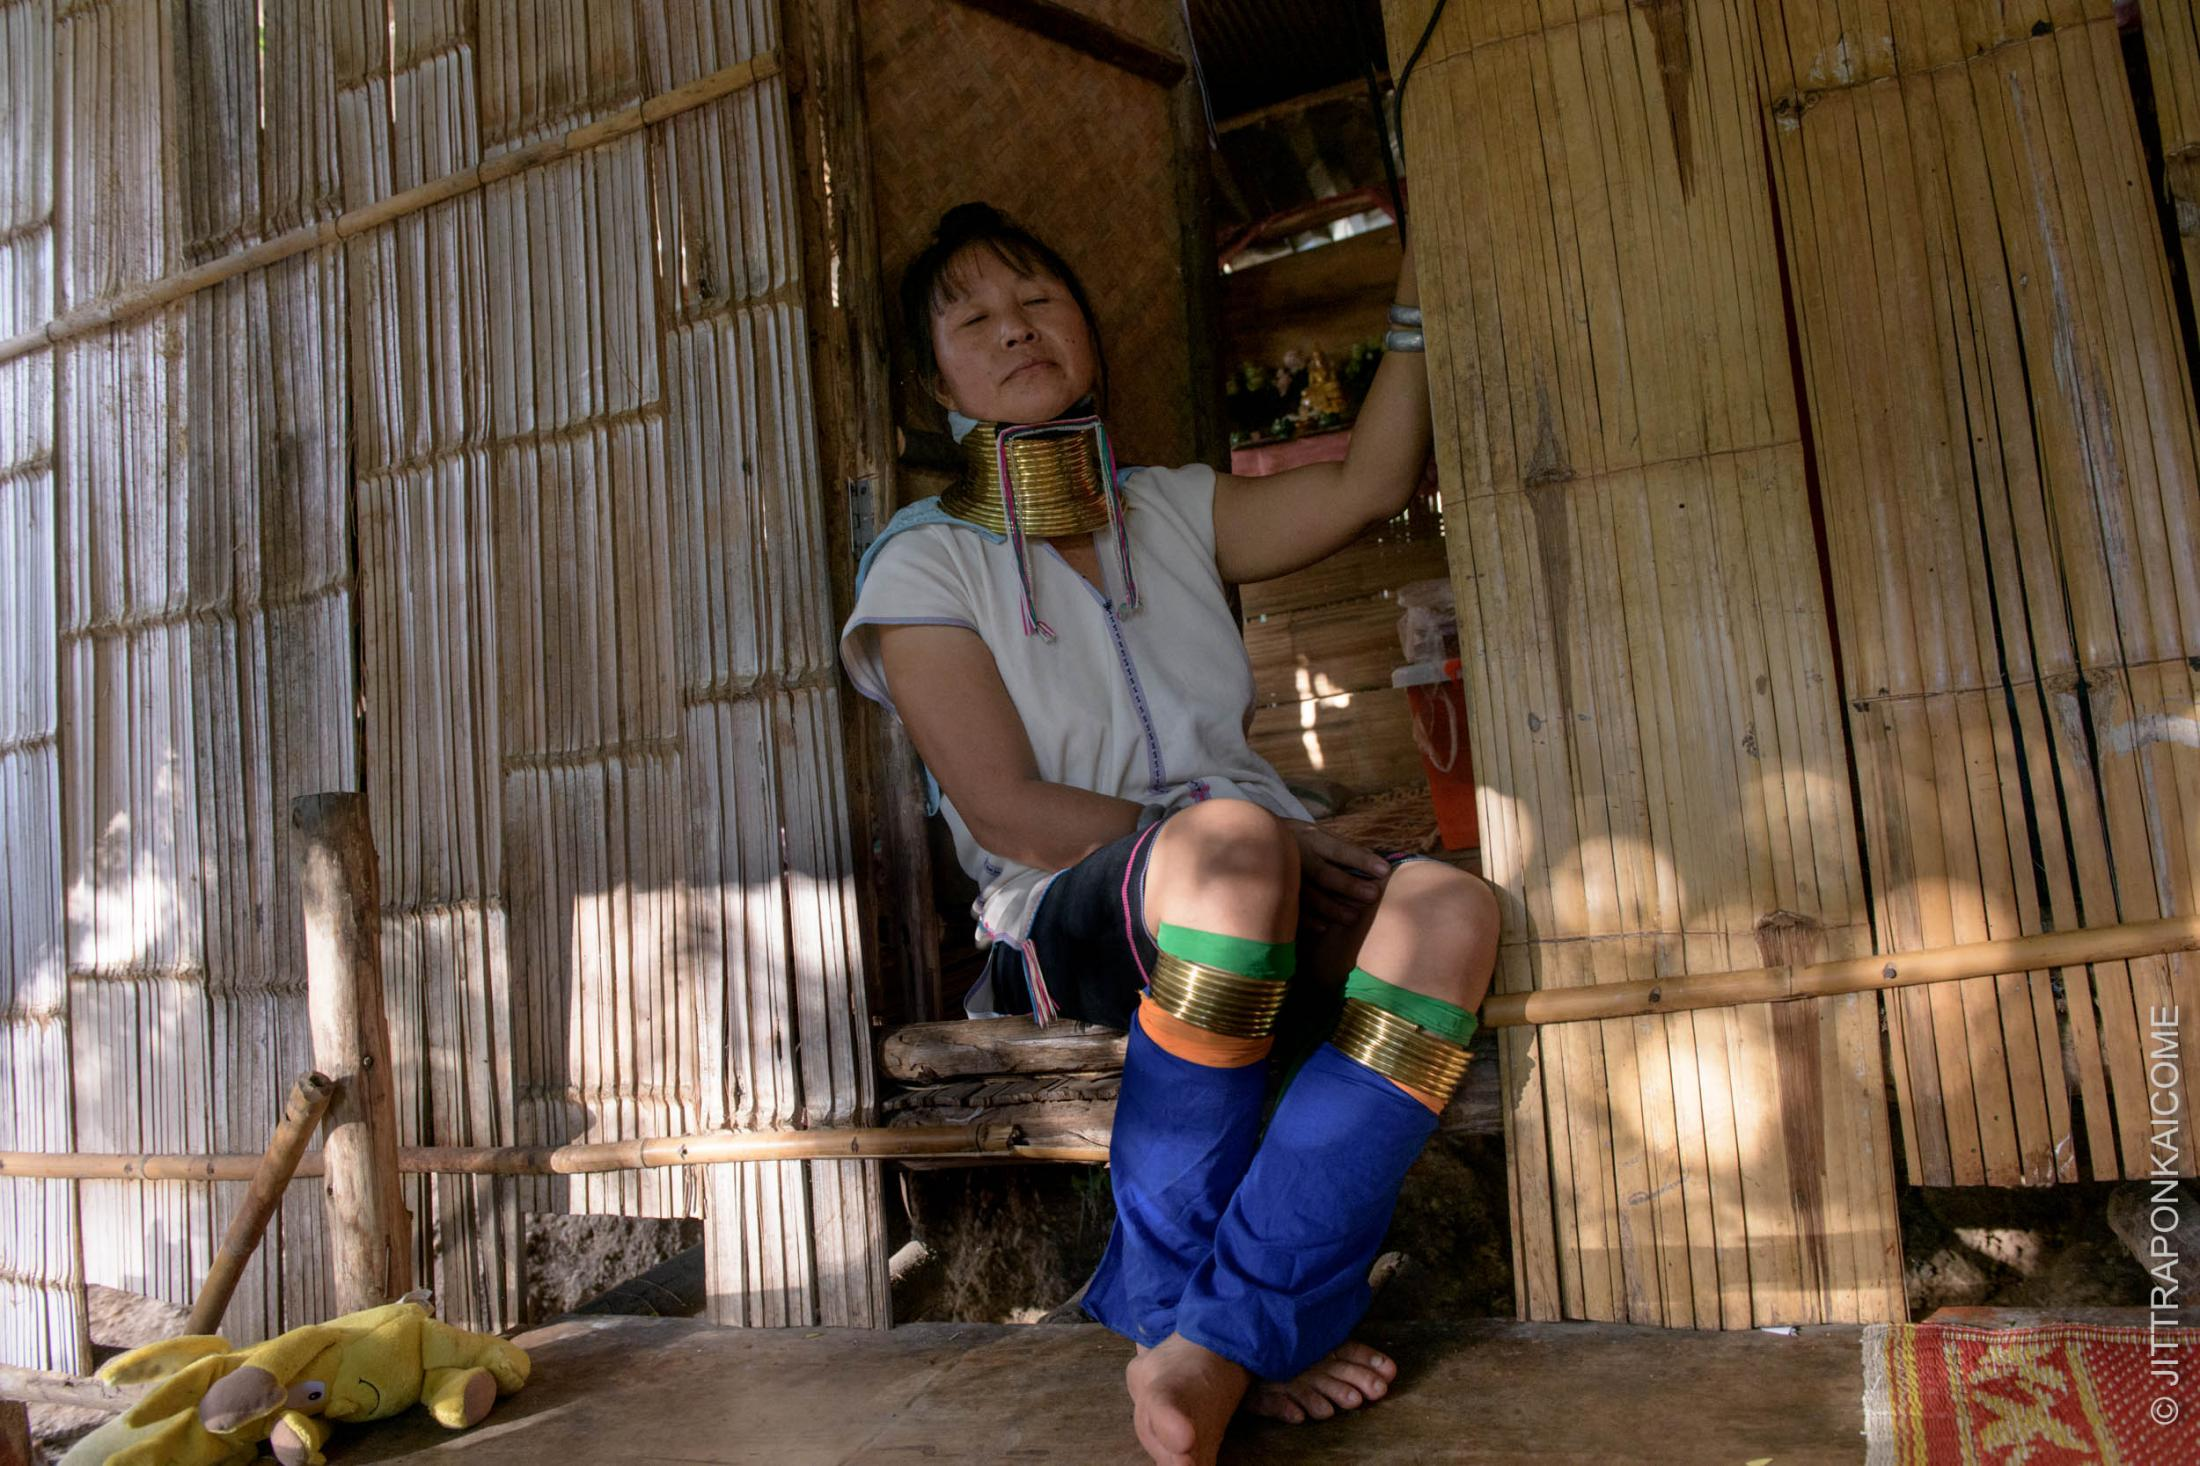 Ma Hao, a 41 years old Kayan woman lost her job and forced her to leave the village. She was lucky to have a place to rely on at another Karen Long Neck Village in Chiang Mai, Thailand.